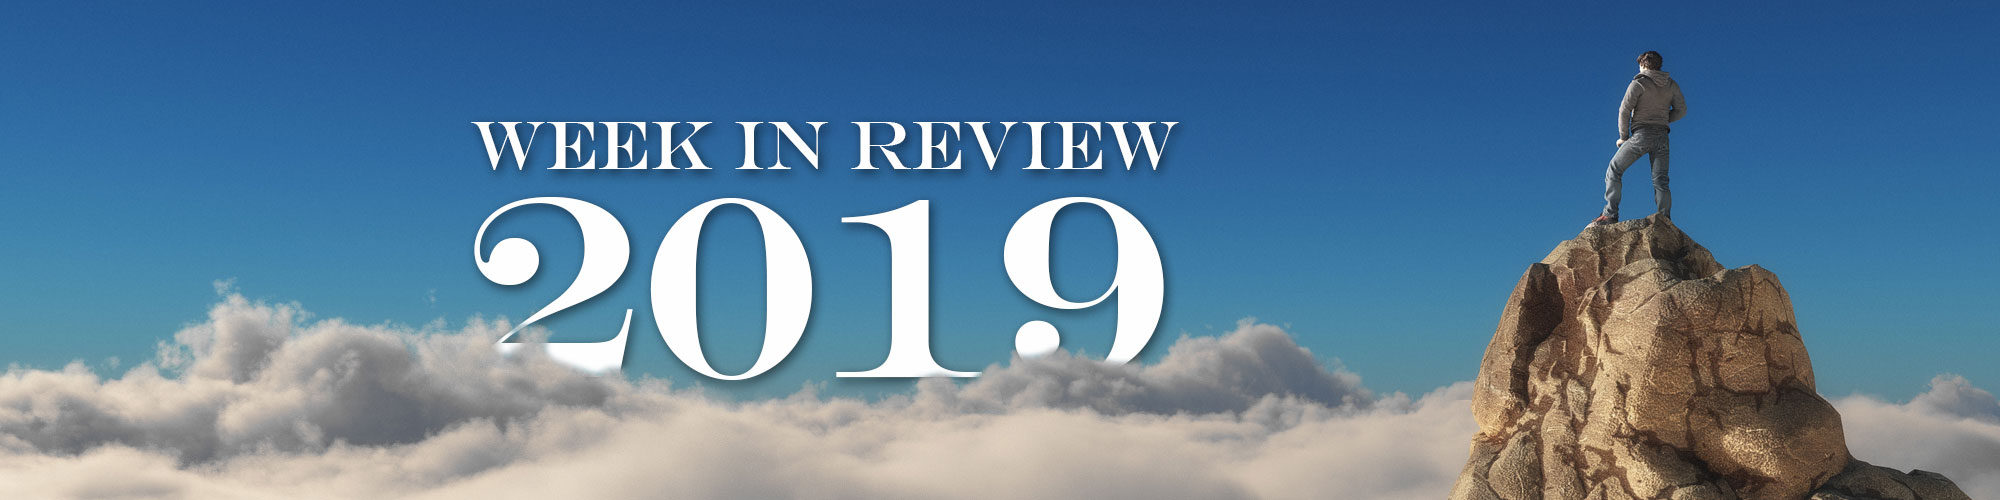 BestGentleman Week In Review 2019